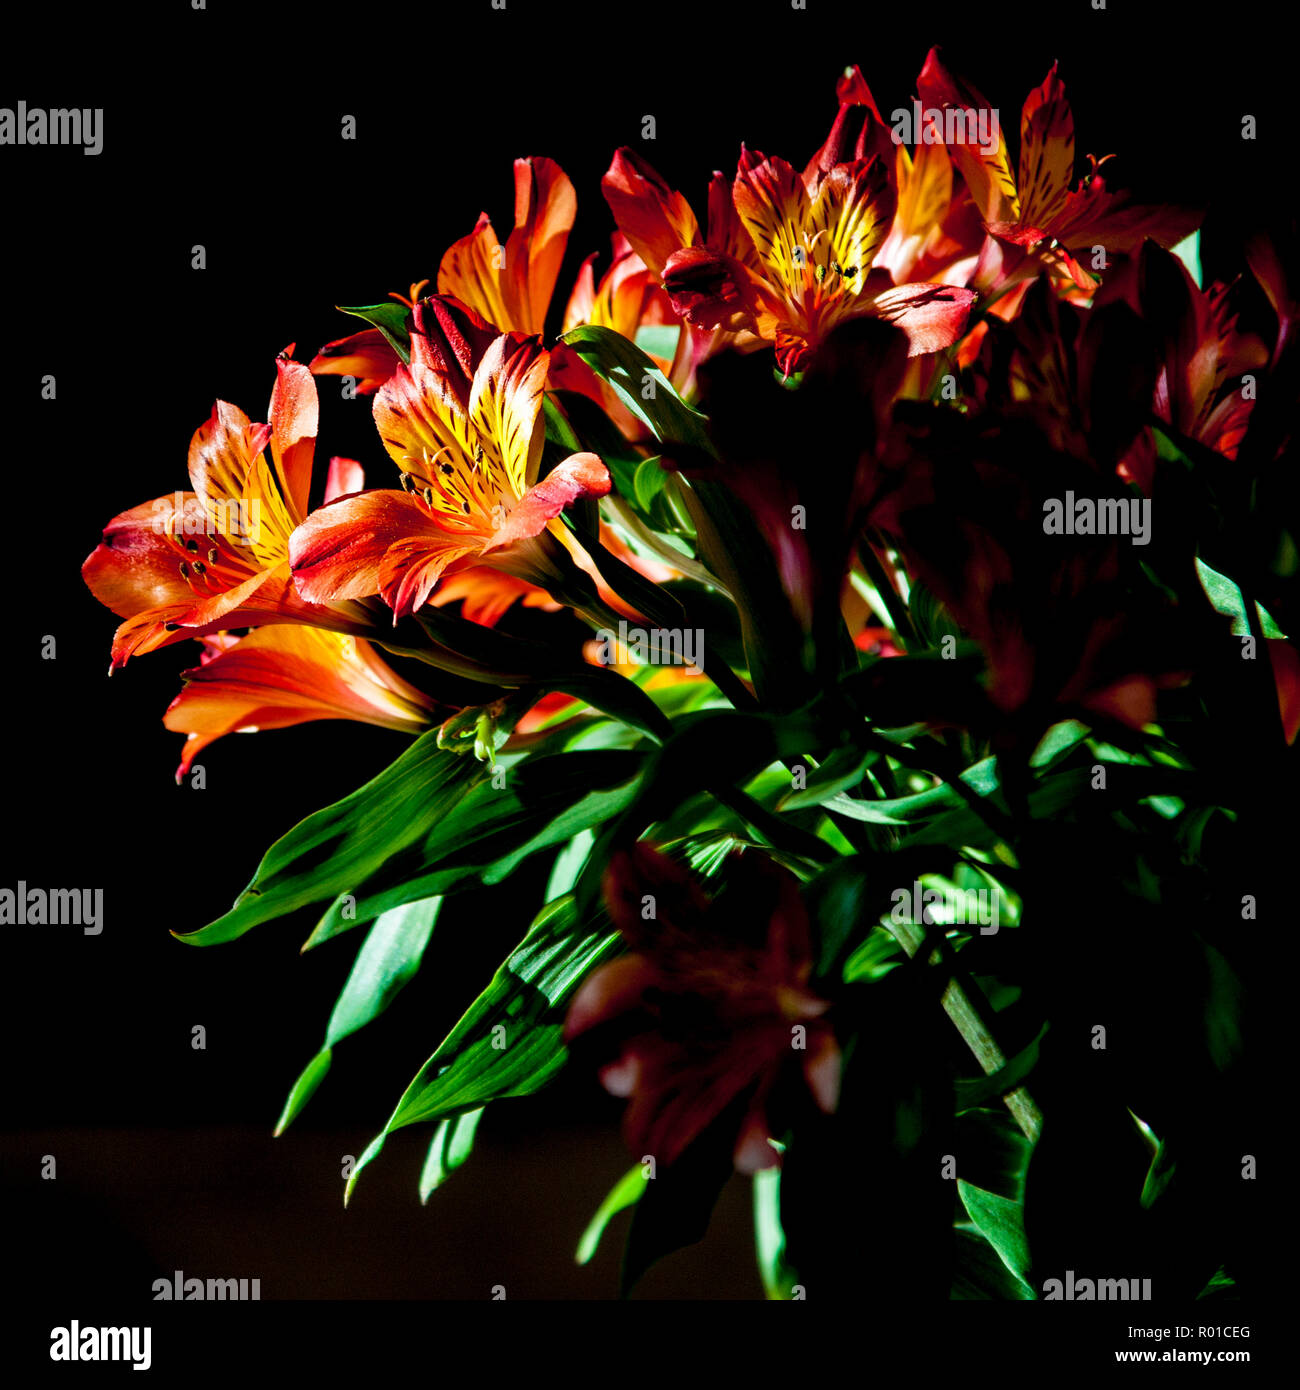 Peruvian lily Alstroemeria in flower against a black background Stock Photo